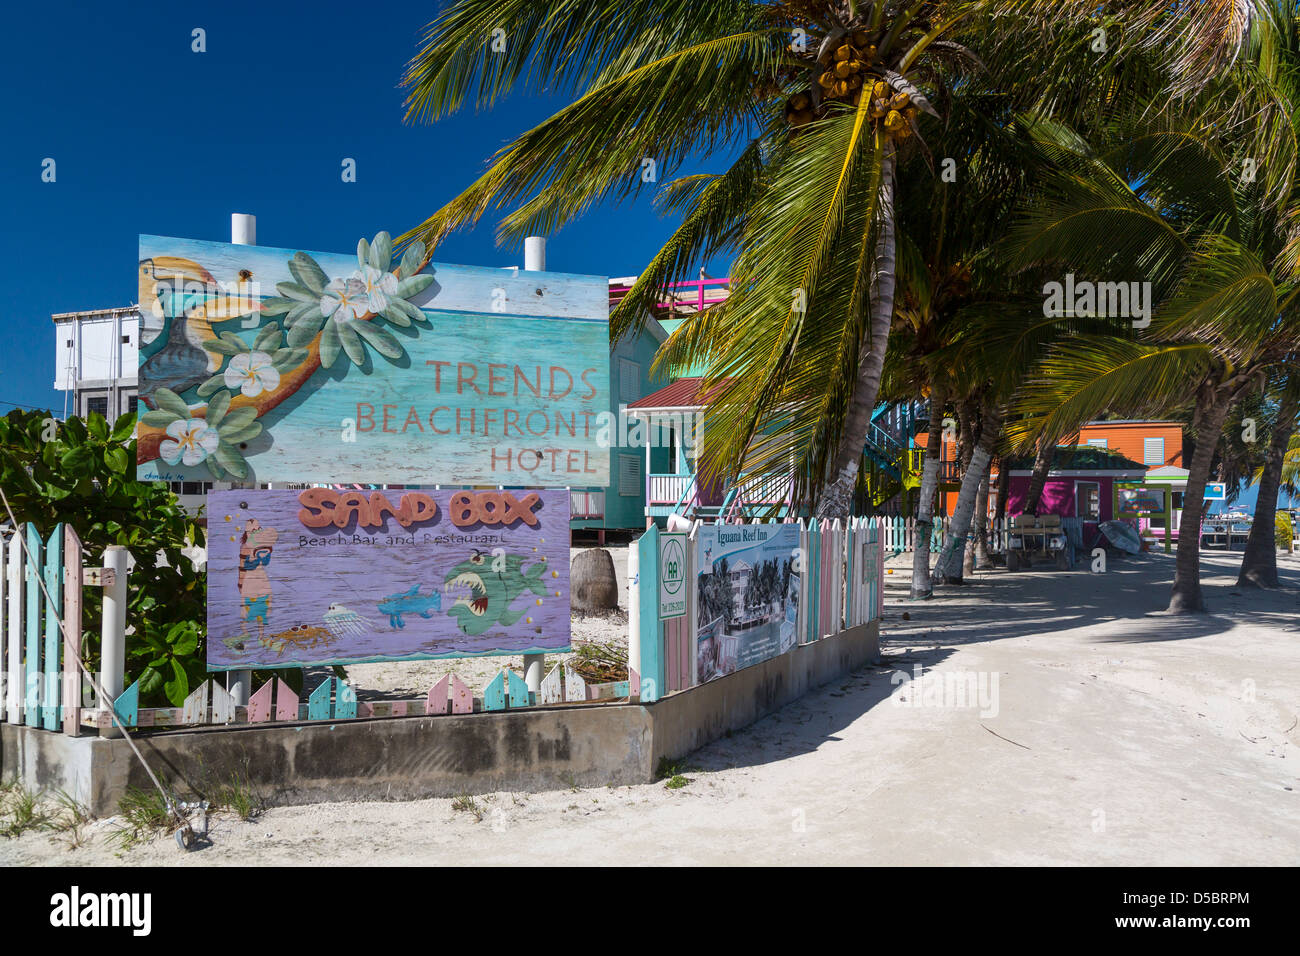 The Trends Beachfront Hotel on the island of Cay Caulker, Belize. - Stock Image